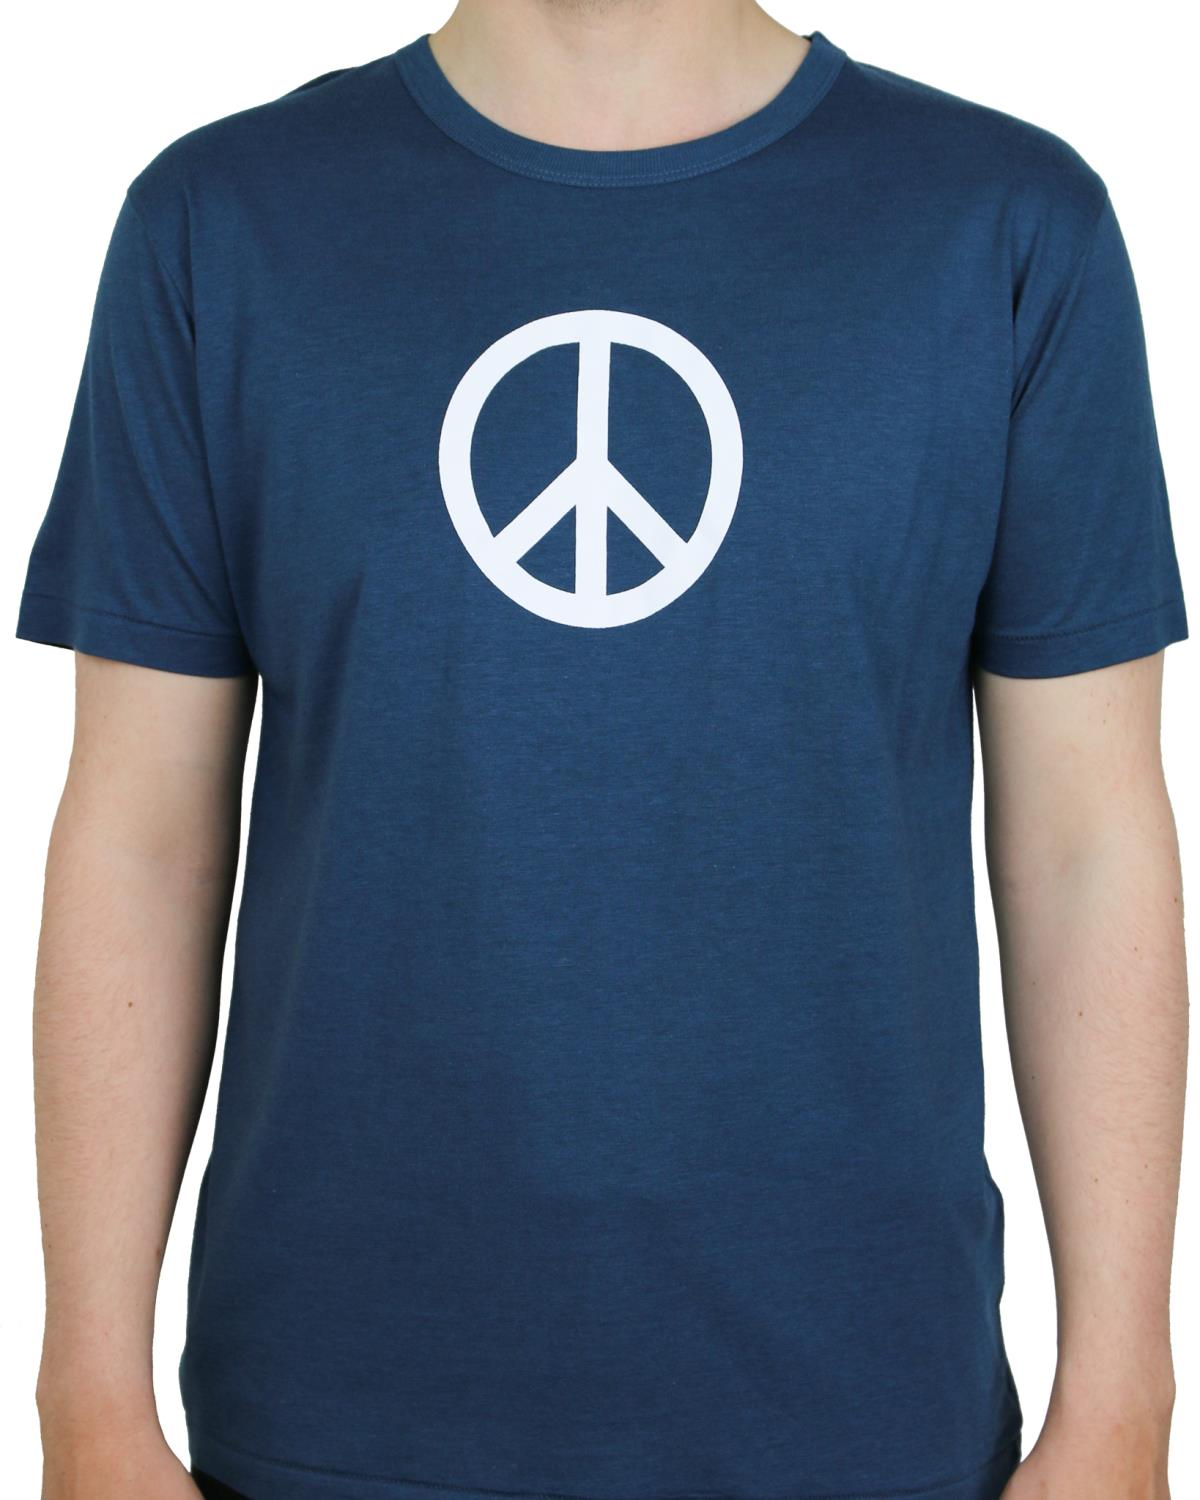 T-shirt Denimblue Peace